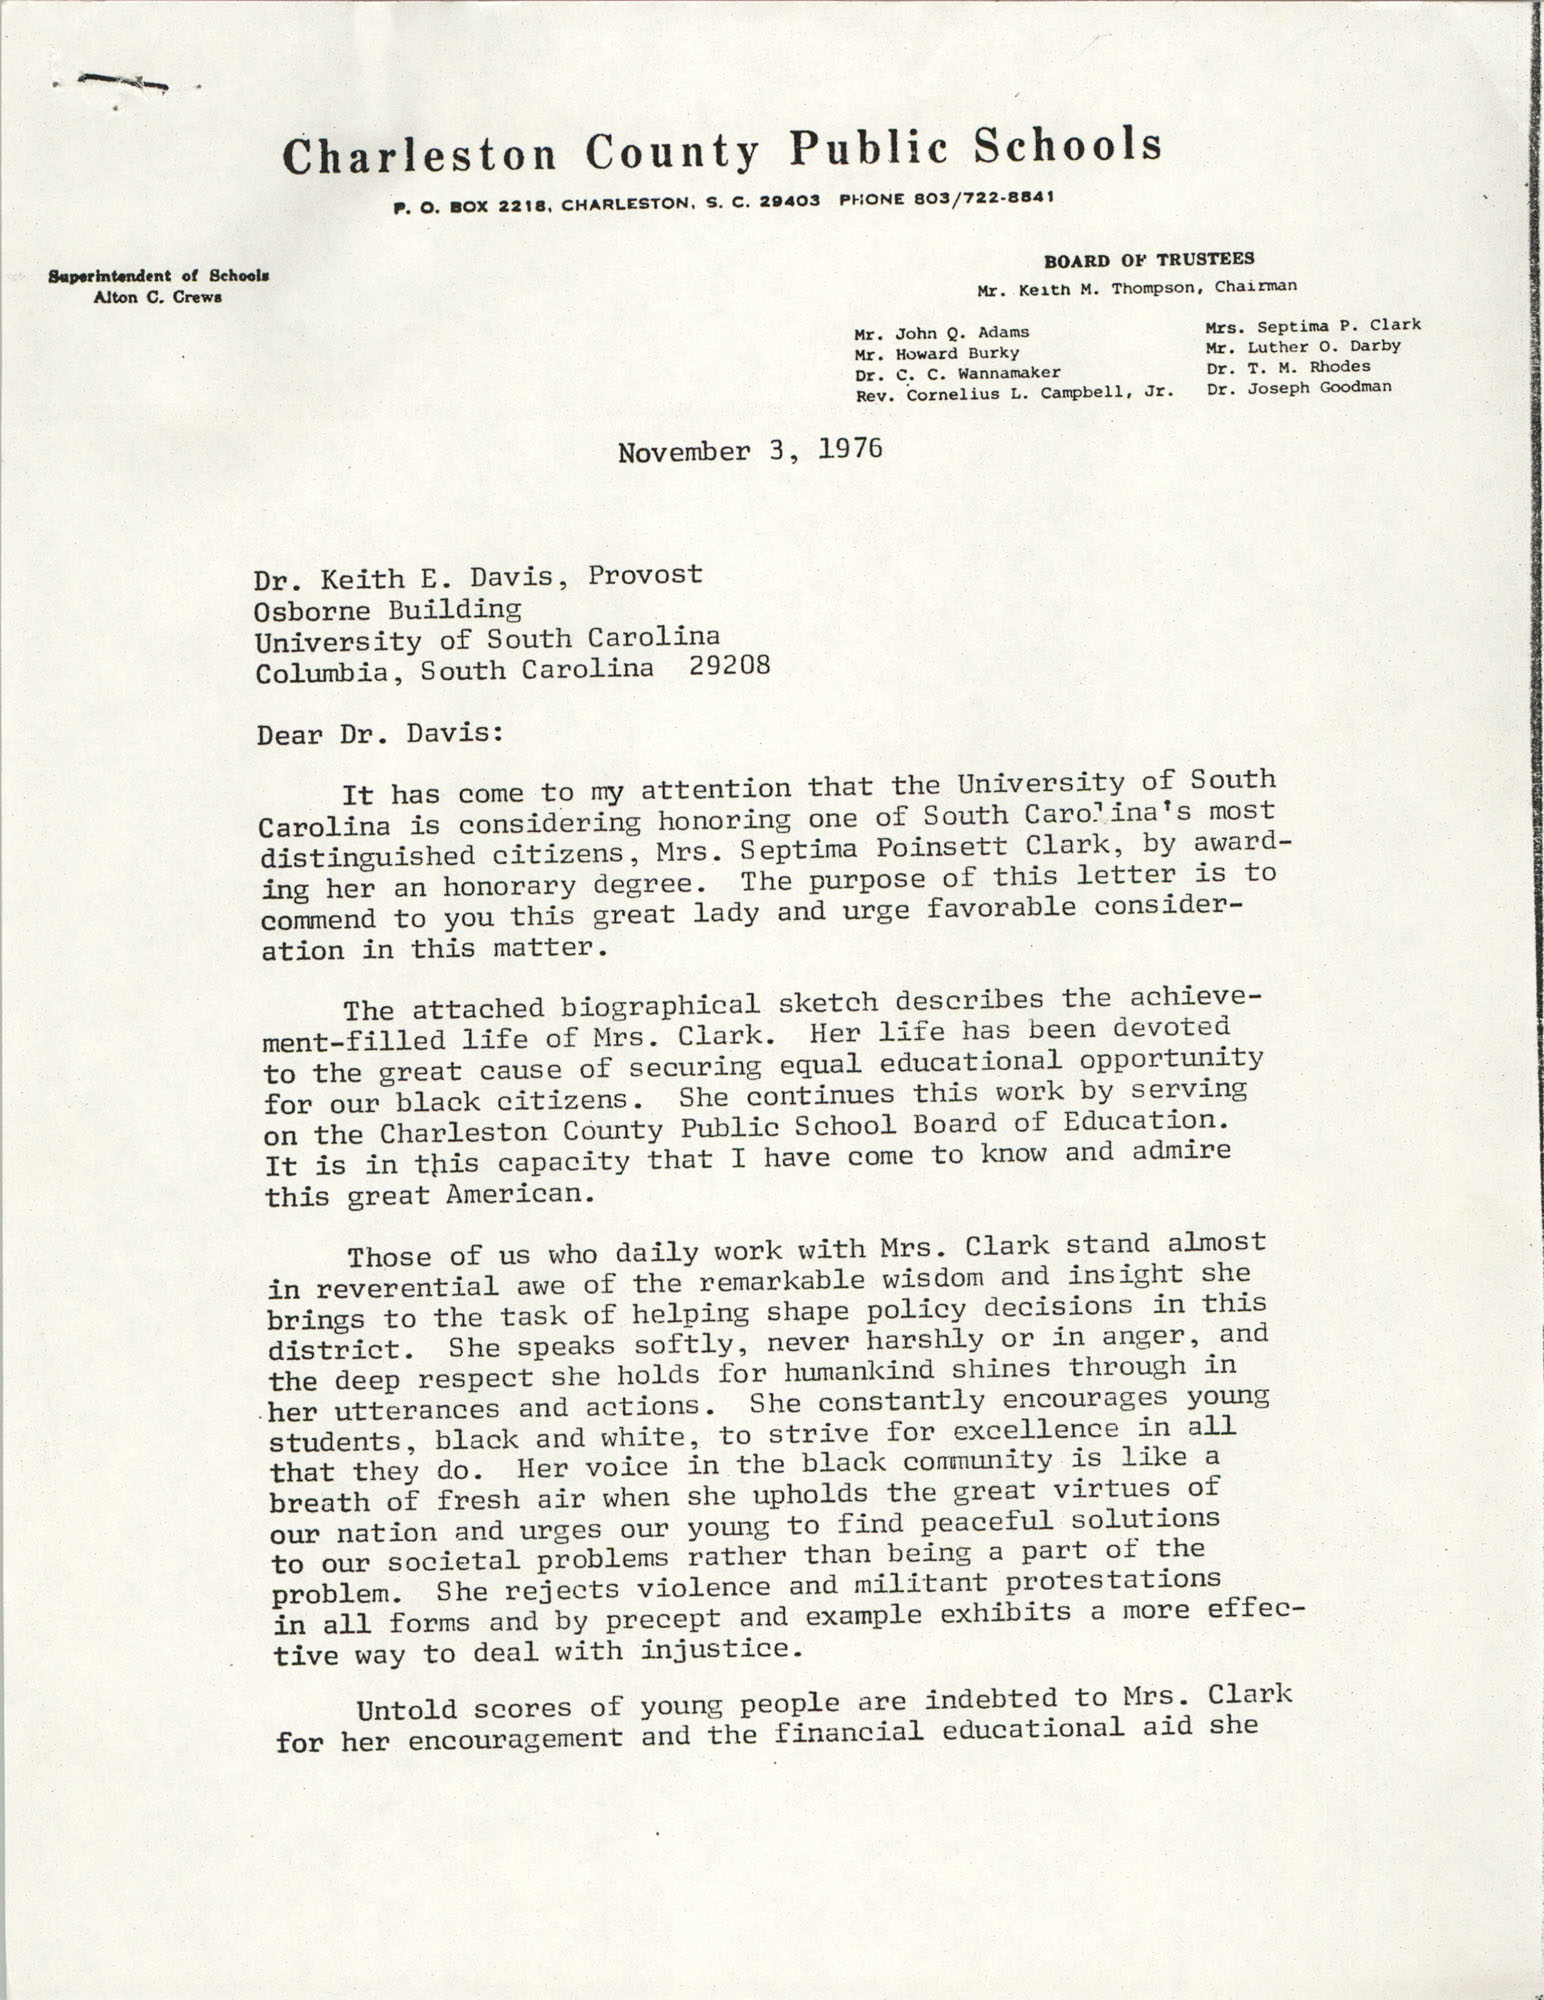 Letter from Alton C. Crews to Keith E. Davis, November 3, 1976